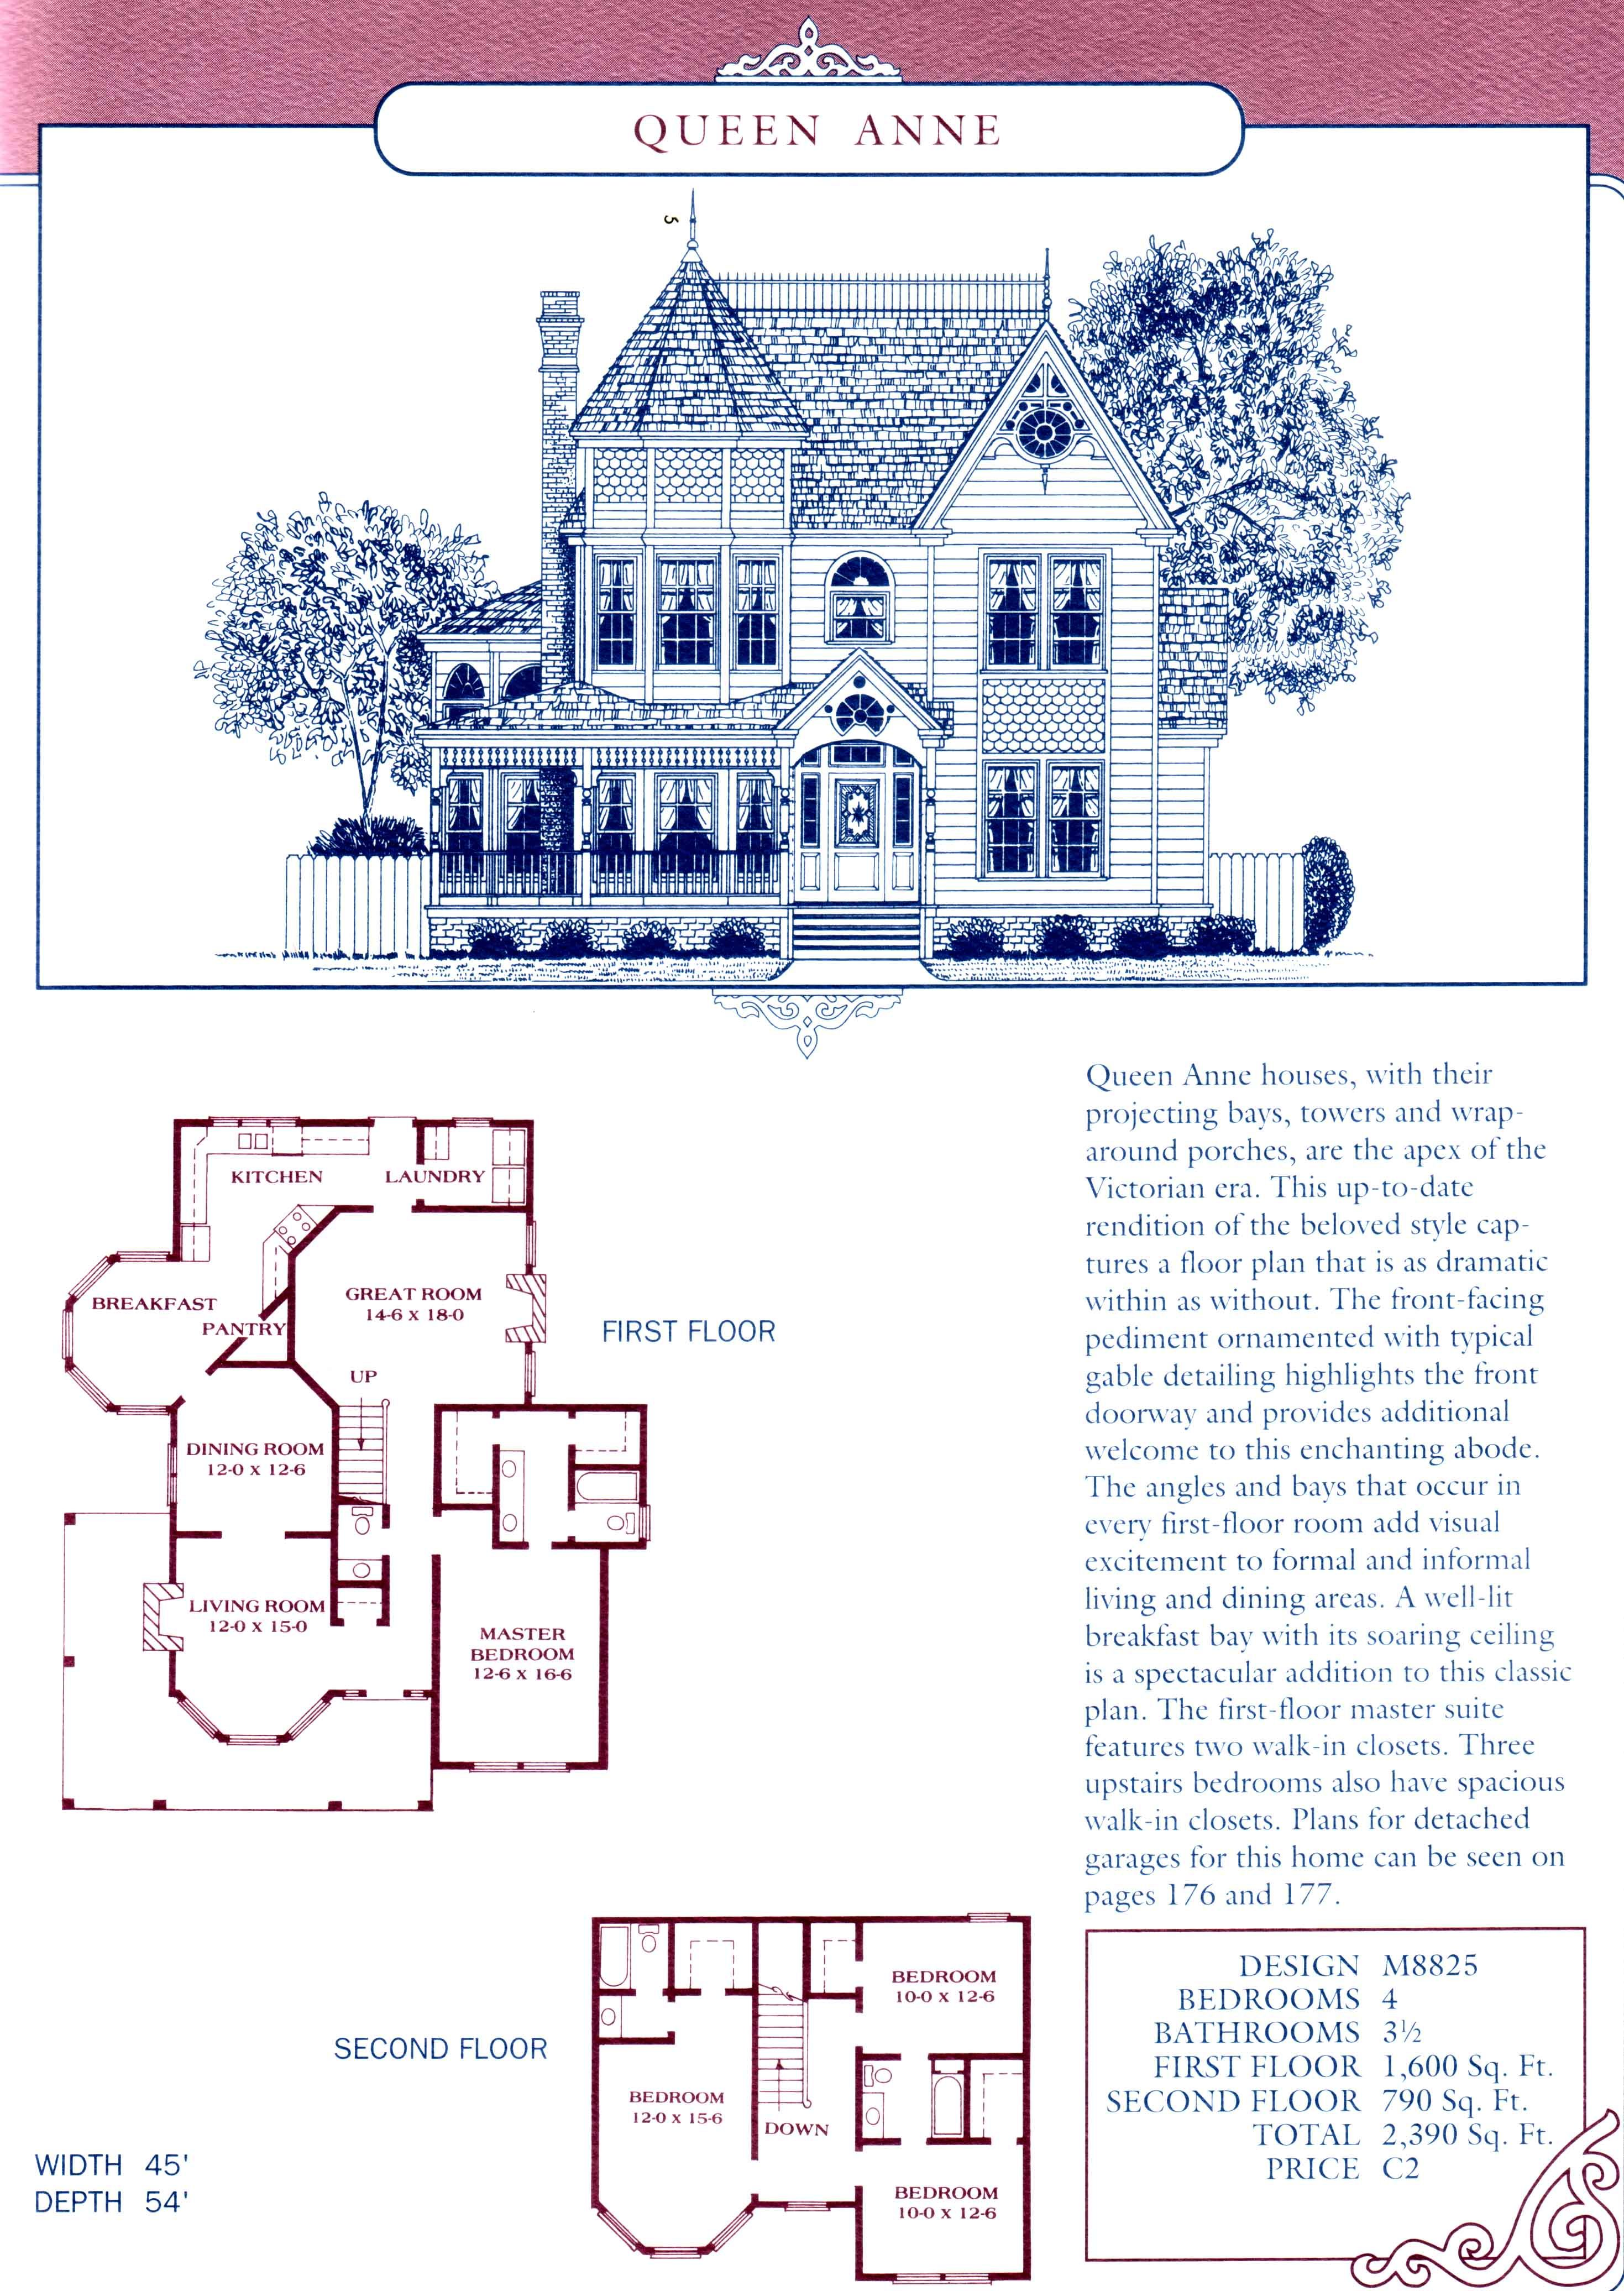 Pin By Midnight Cricket On Architecture Plan Queen Anne House Architecture Plan Historic Buildings